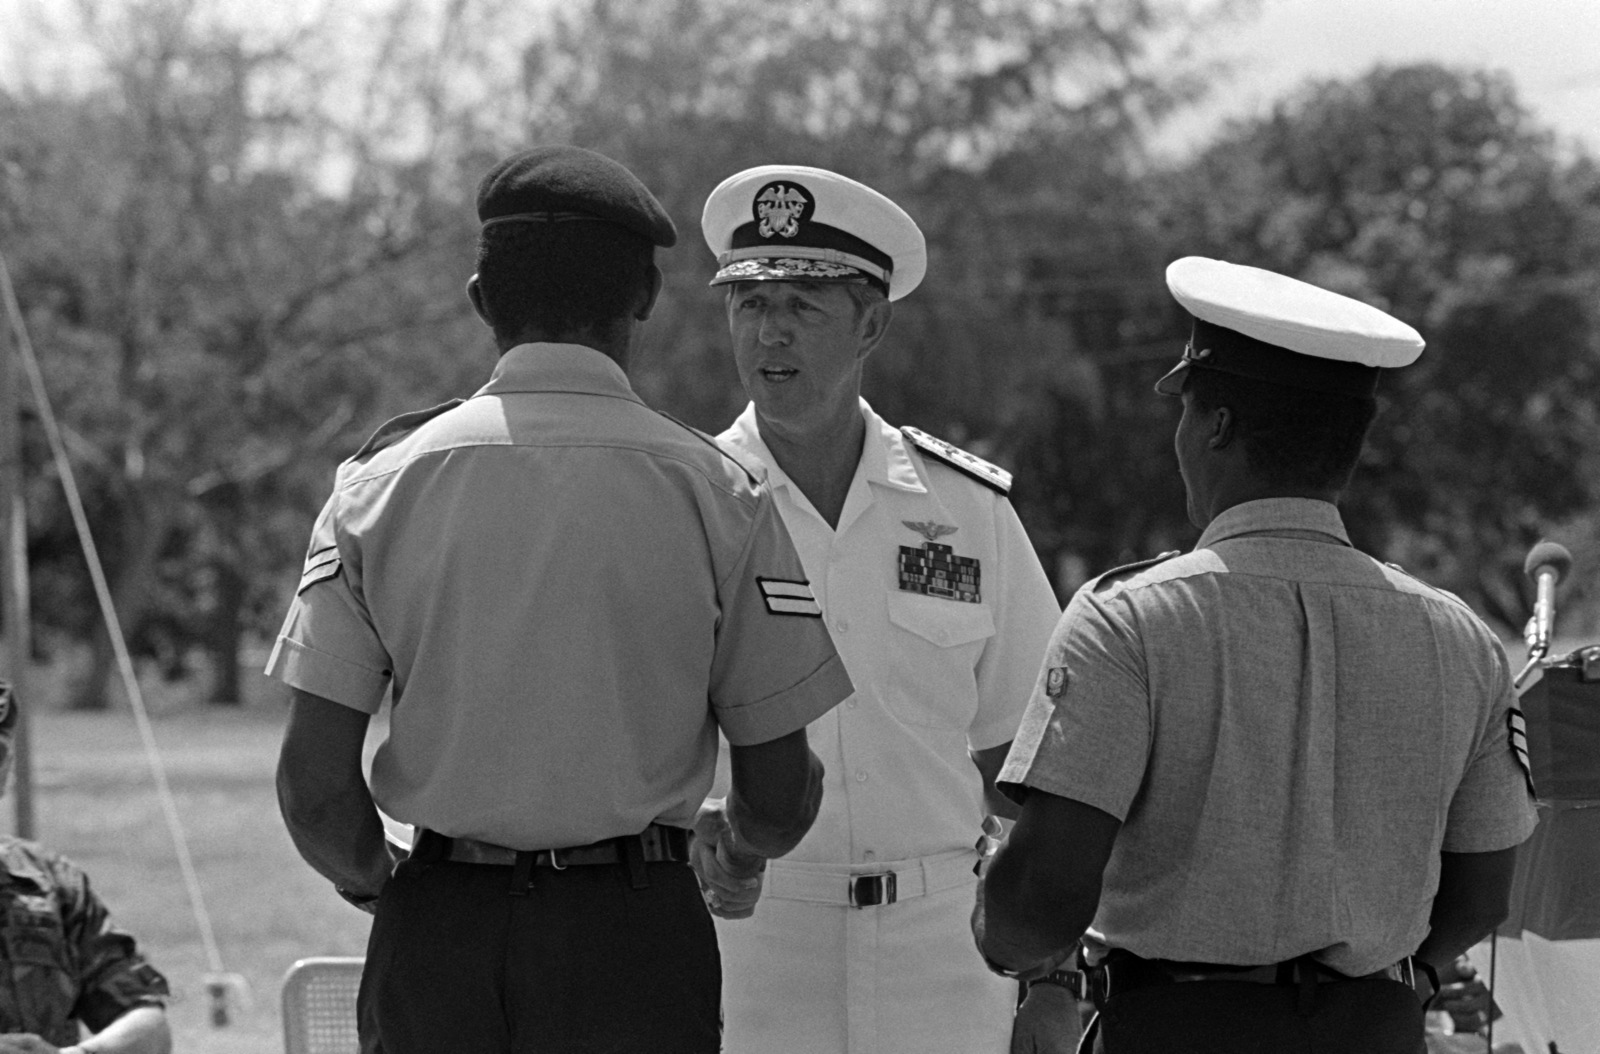 Rear Admiral (RADM) (upper half) Ted C. Steele Jr., commander, US Forces, Caribbean, gives awards to Antigua and Barbuda Defense Force members during the closing ceremonies of UPWARD KEY '87, a joint exercise of US and Antigua and Barbuda Defense Forces